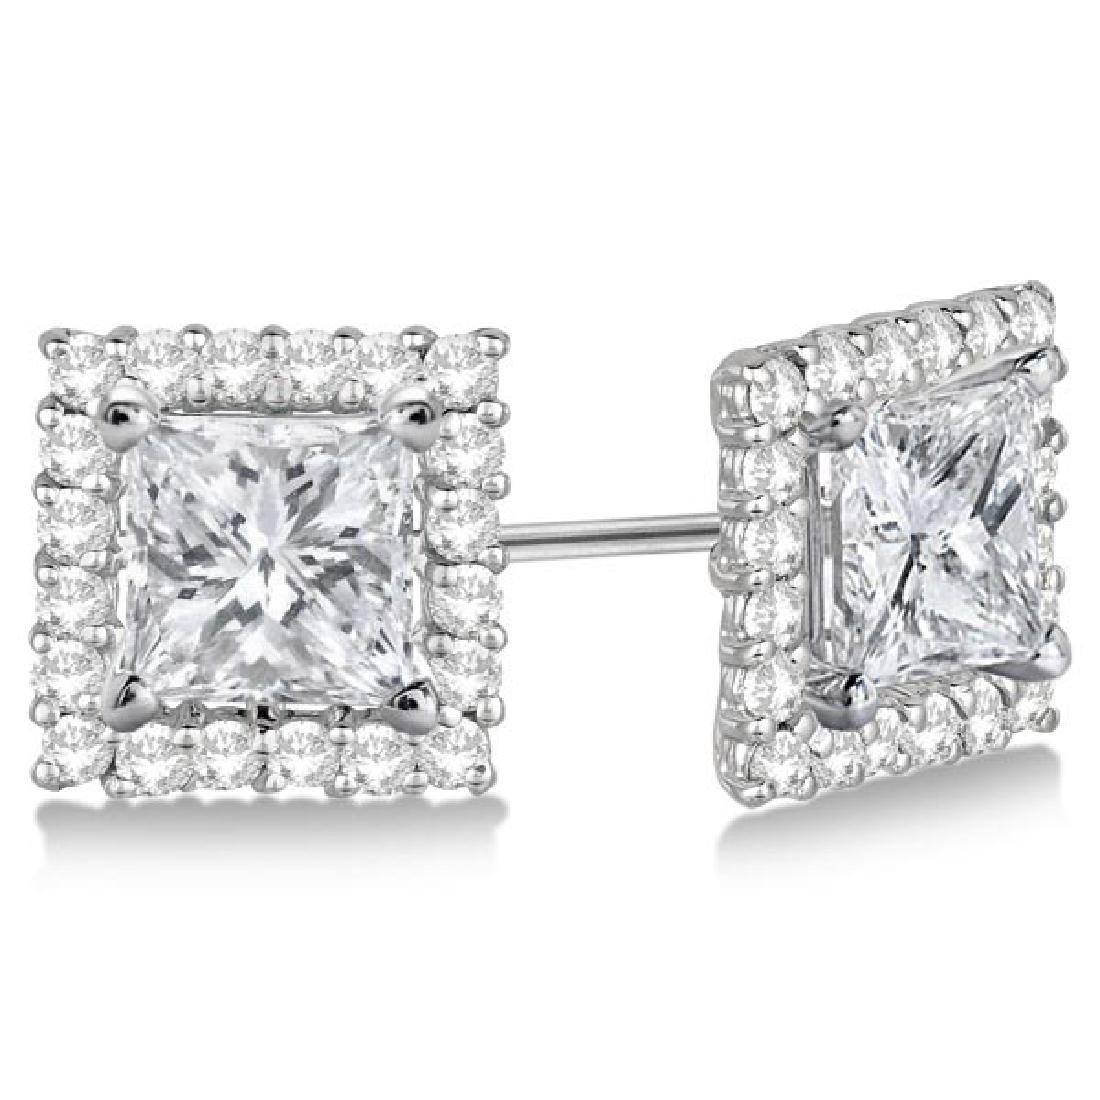 Pave-Set Square Diamond Earring Jackets 14k White Gold